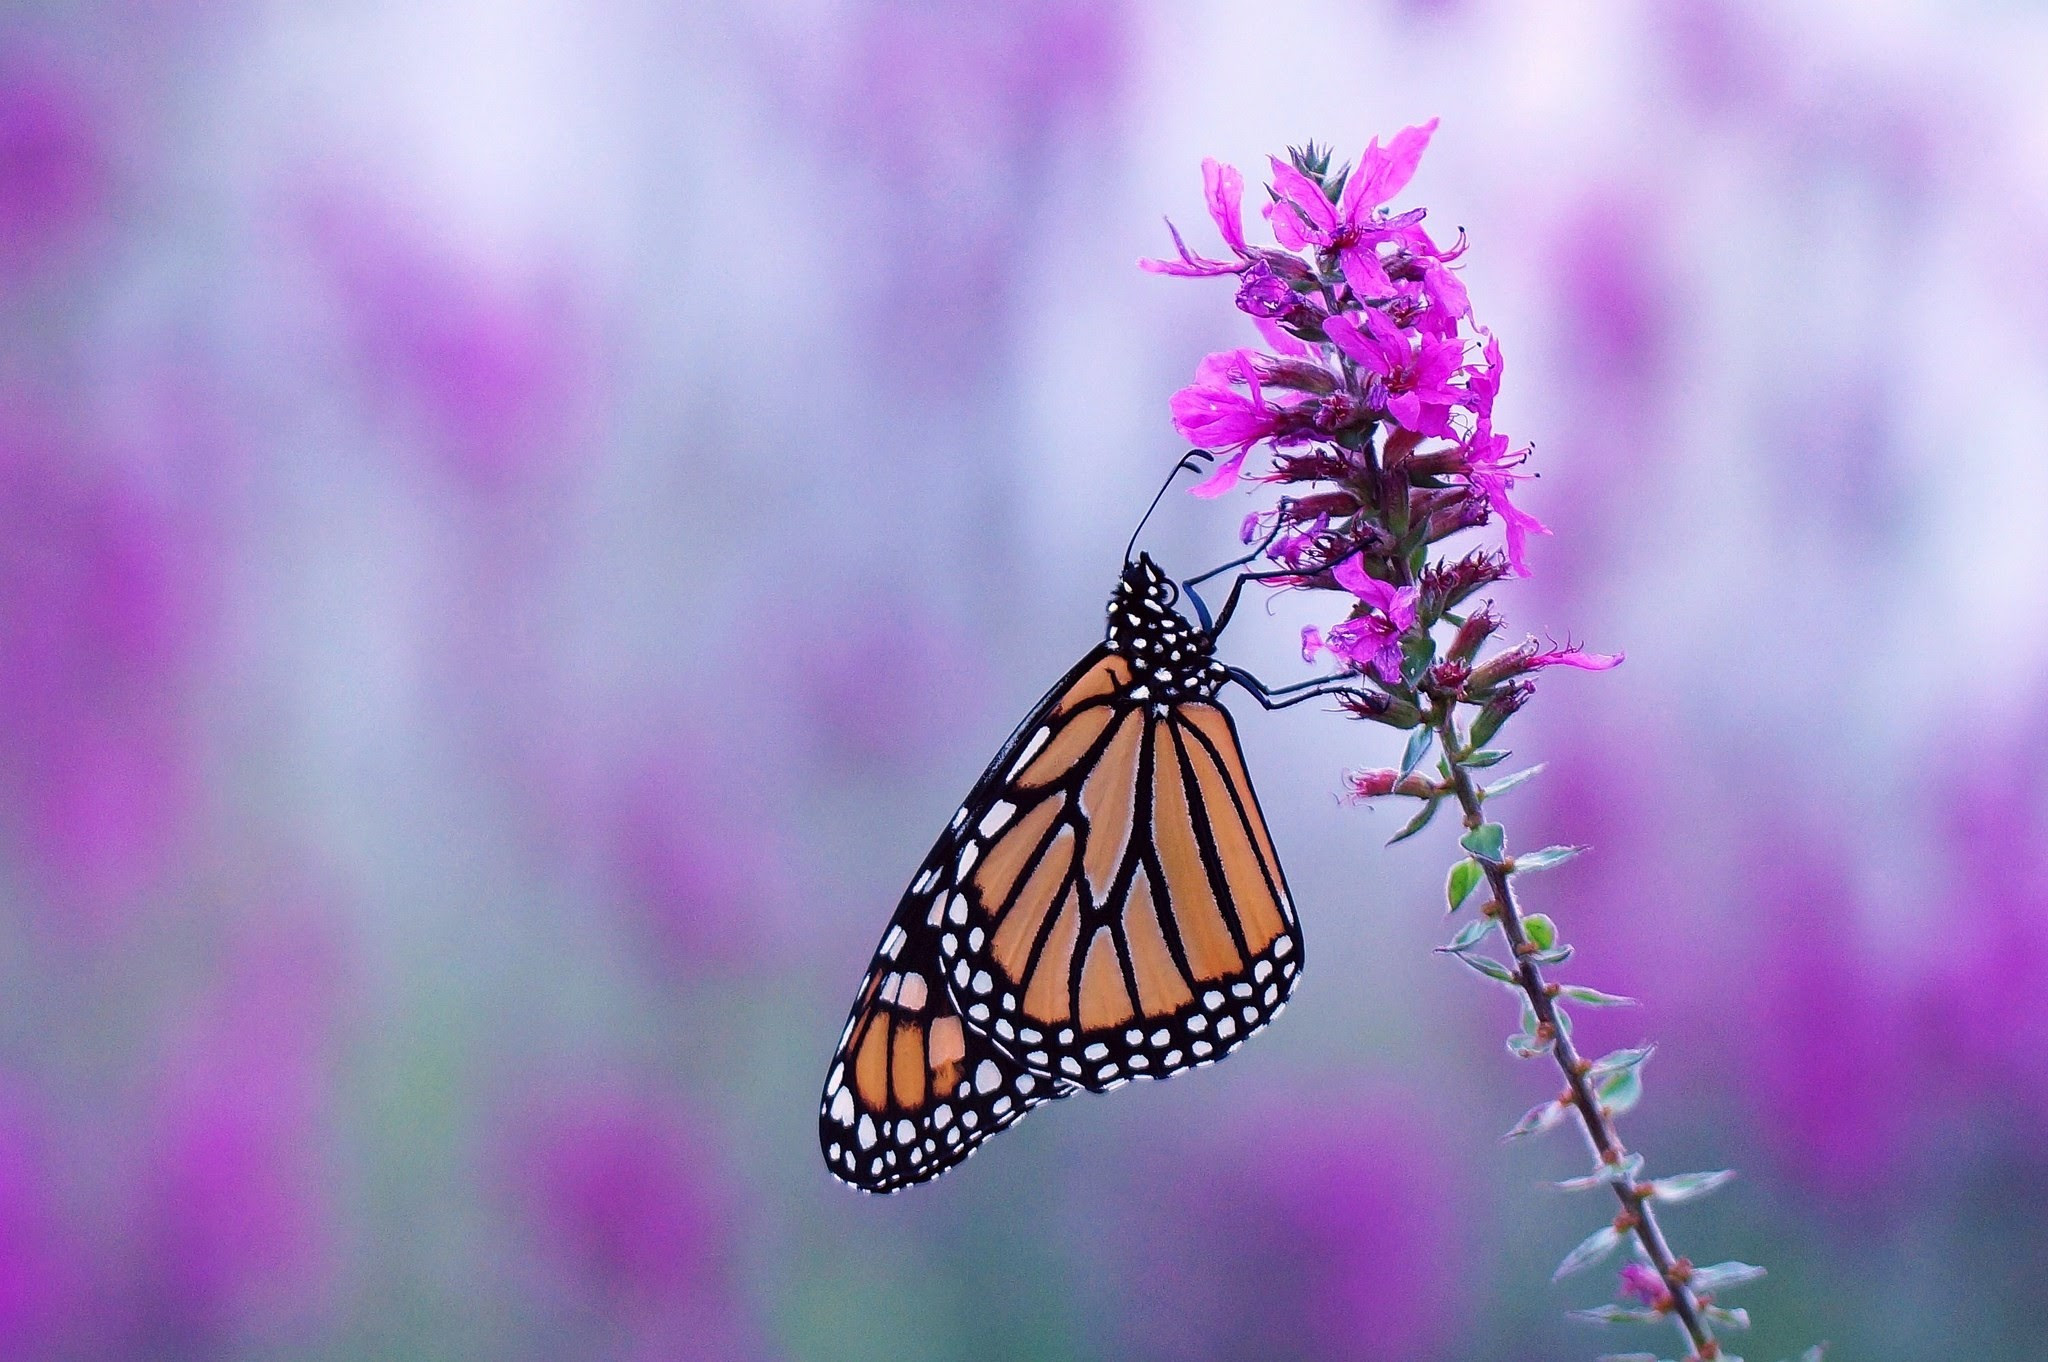 Butterfly Wallpaper for Computer (60+ images)